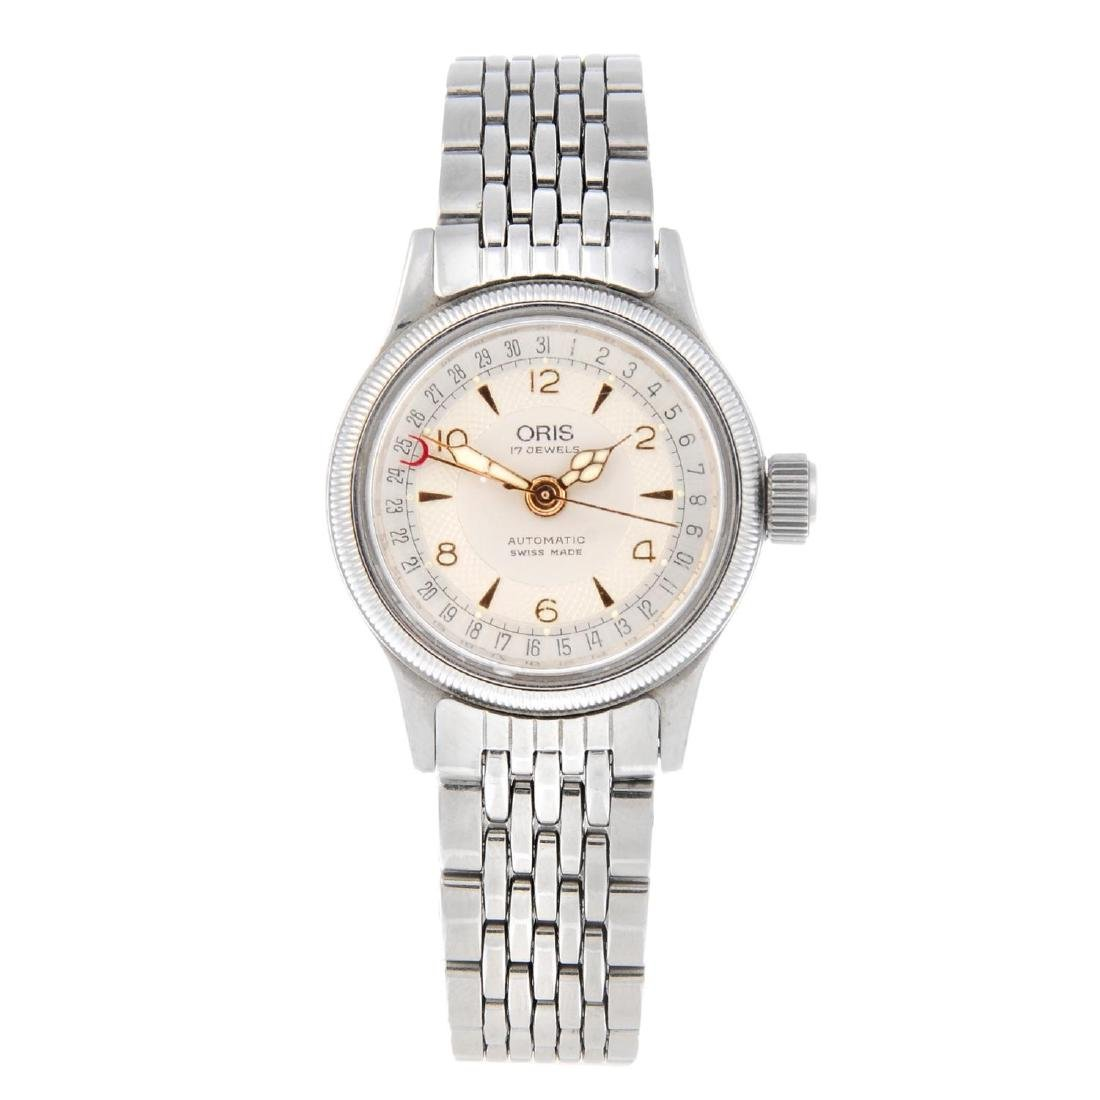 ORIS - a lady's Big Crown Pointer Date bracelet watch.